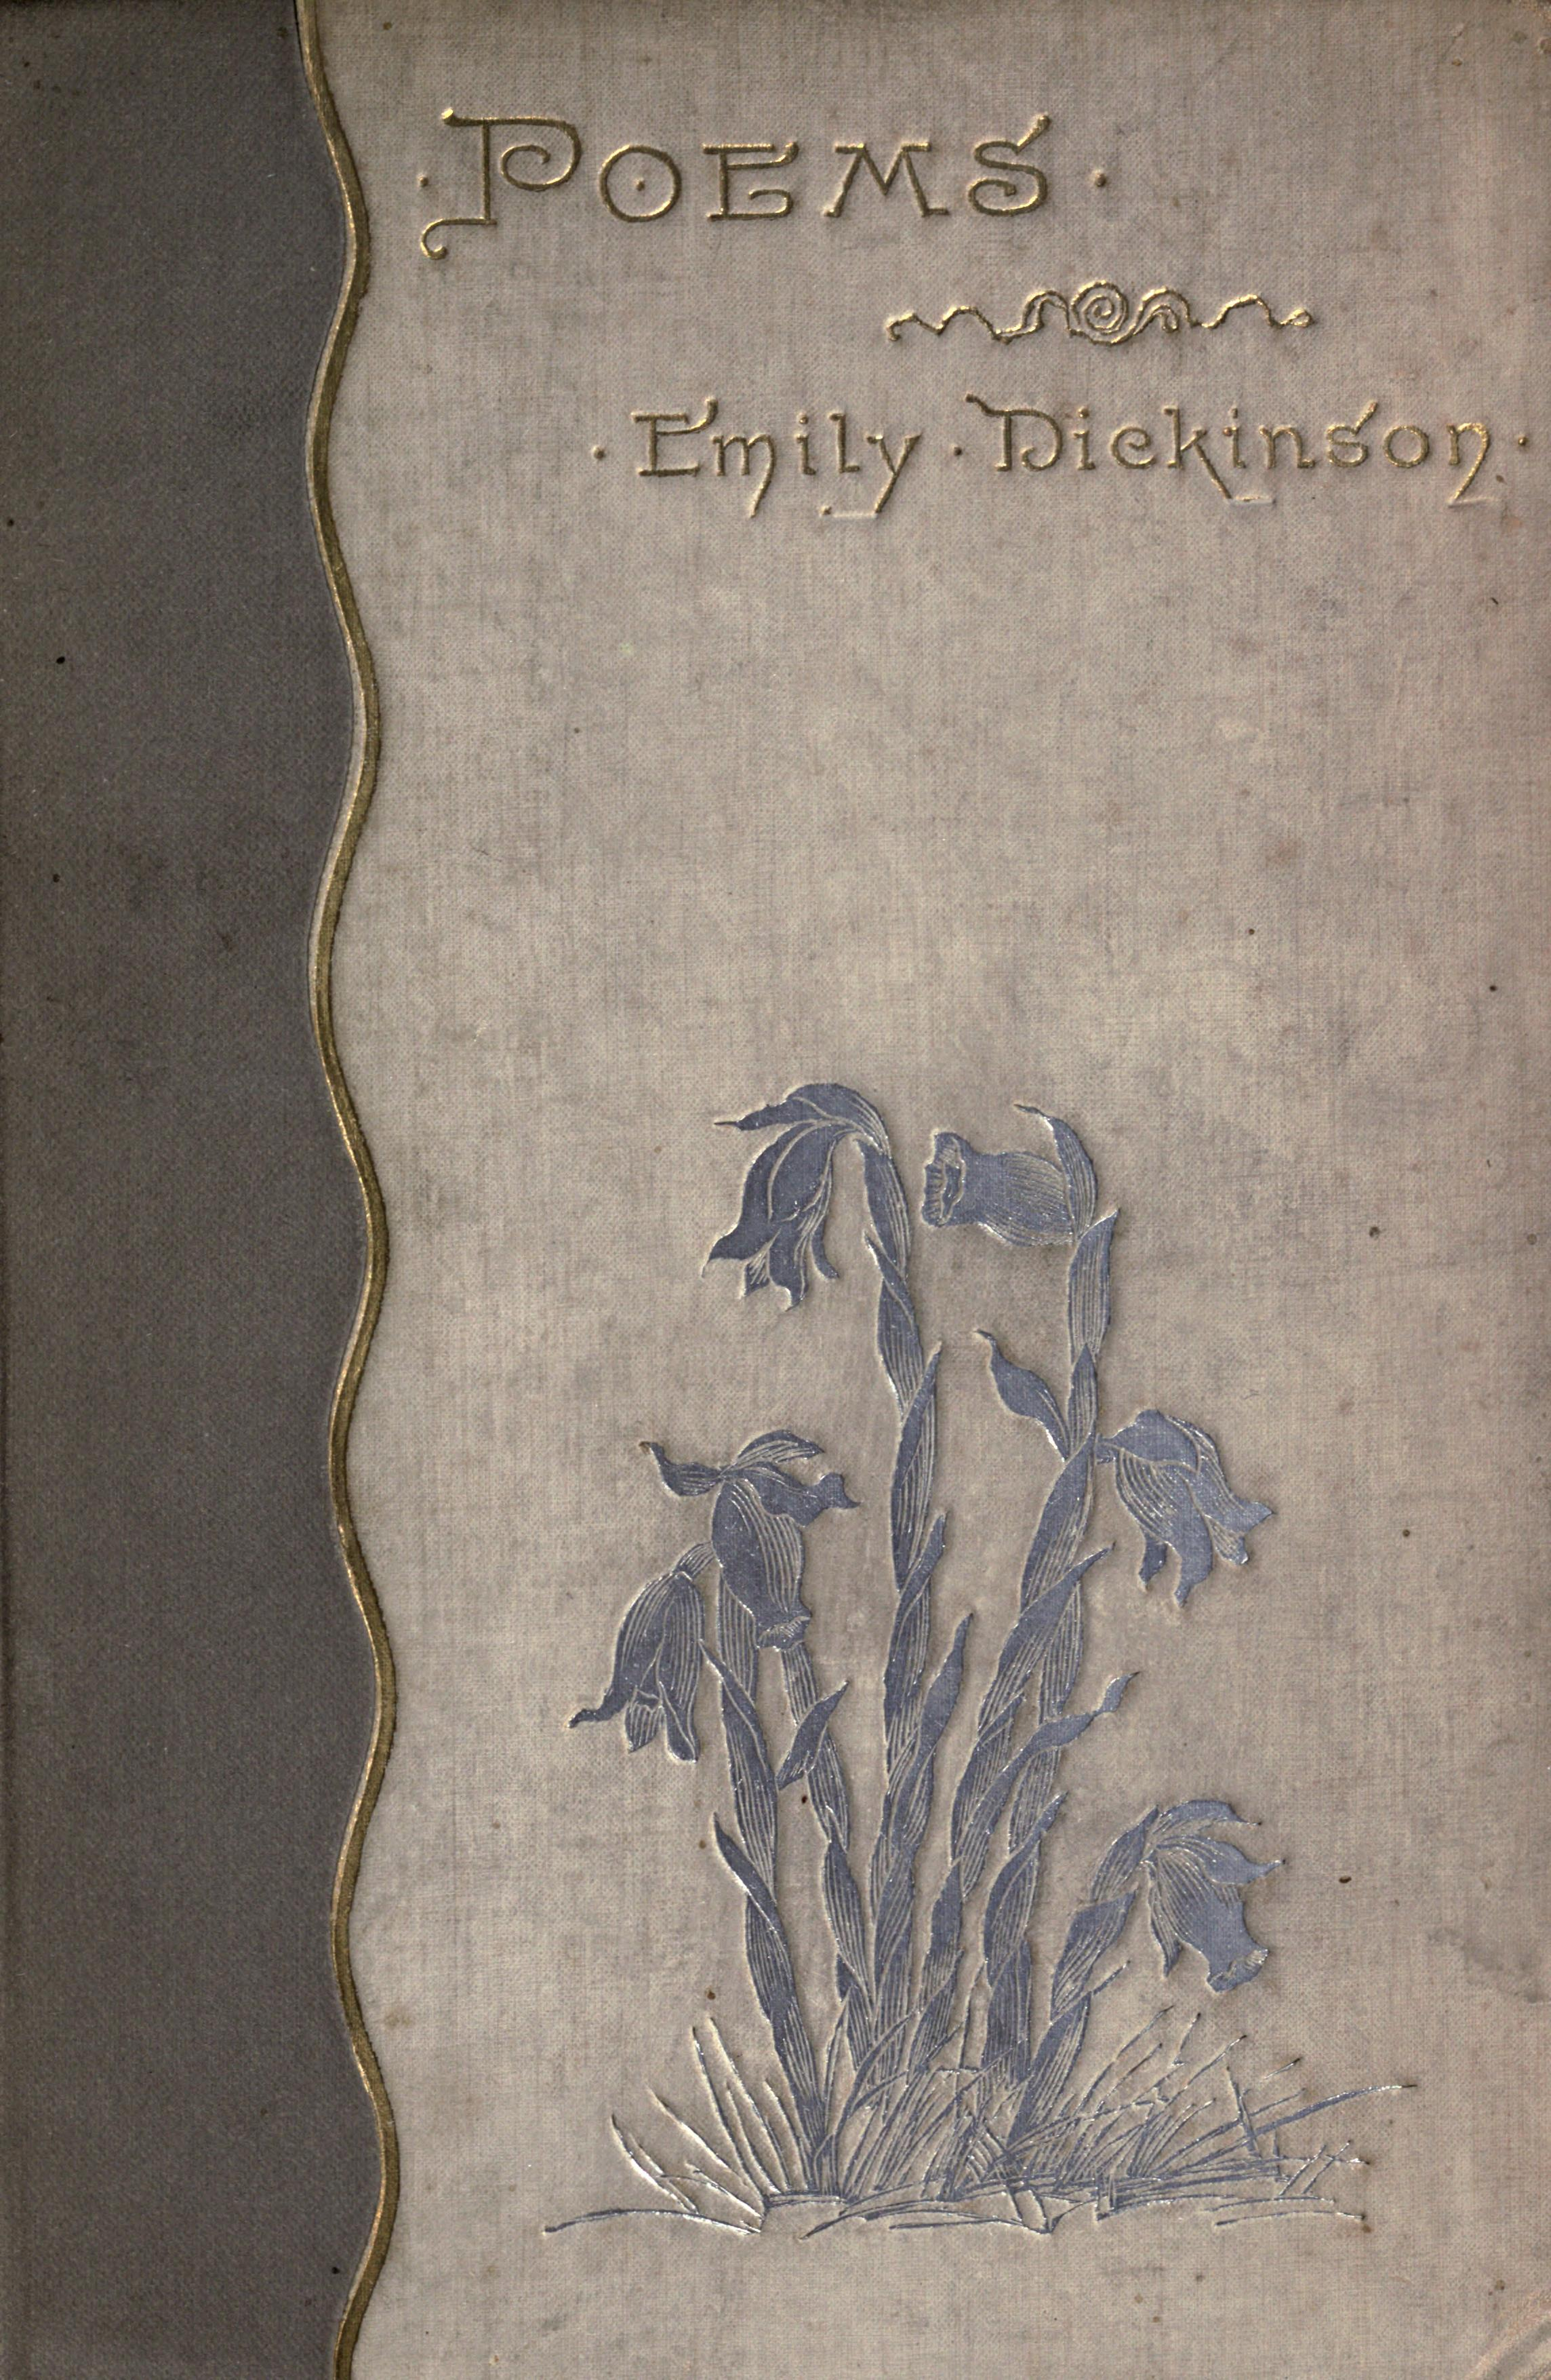 the life and work of emily dickinson Emily dickinson's major ideas are readily available to us in her poems and letters, but on first reading, they form complicated and often contradictory patterns this is not surprising her world was insular and small, and she was highly introspective in addition, her work has its roots in the .